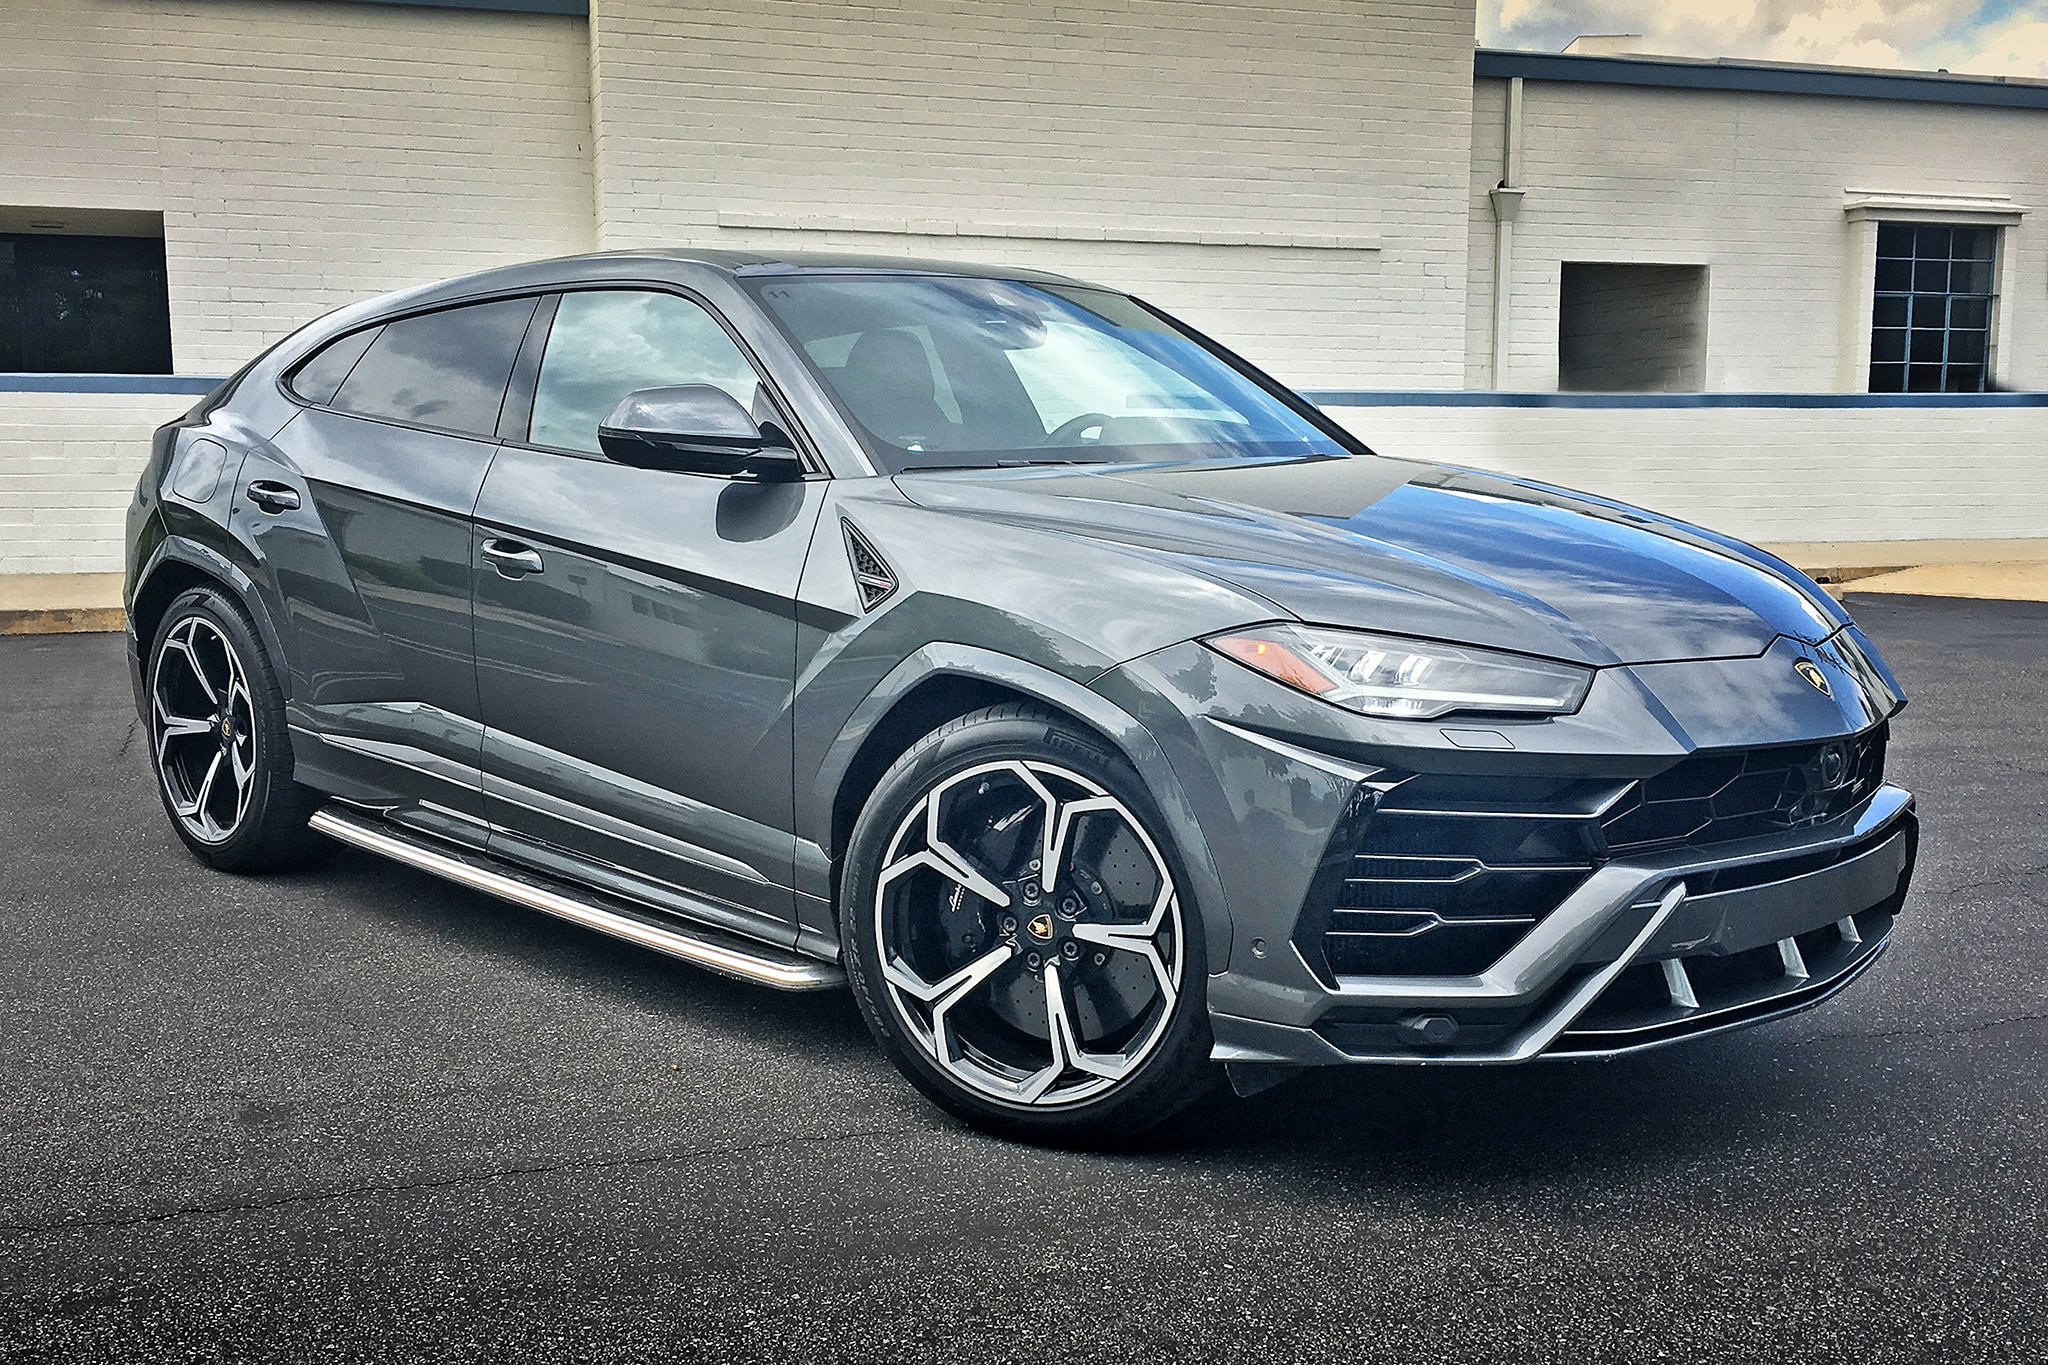 Lamborghini Urus Review There S Absolutely Nothing Else Like It For Now